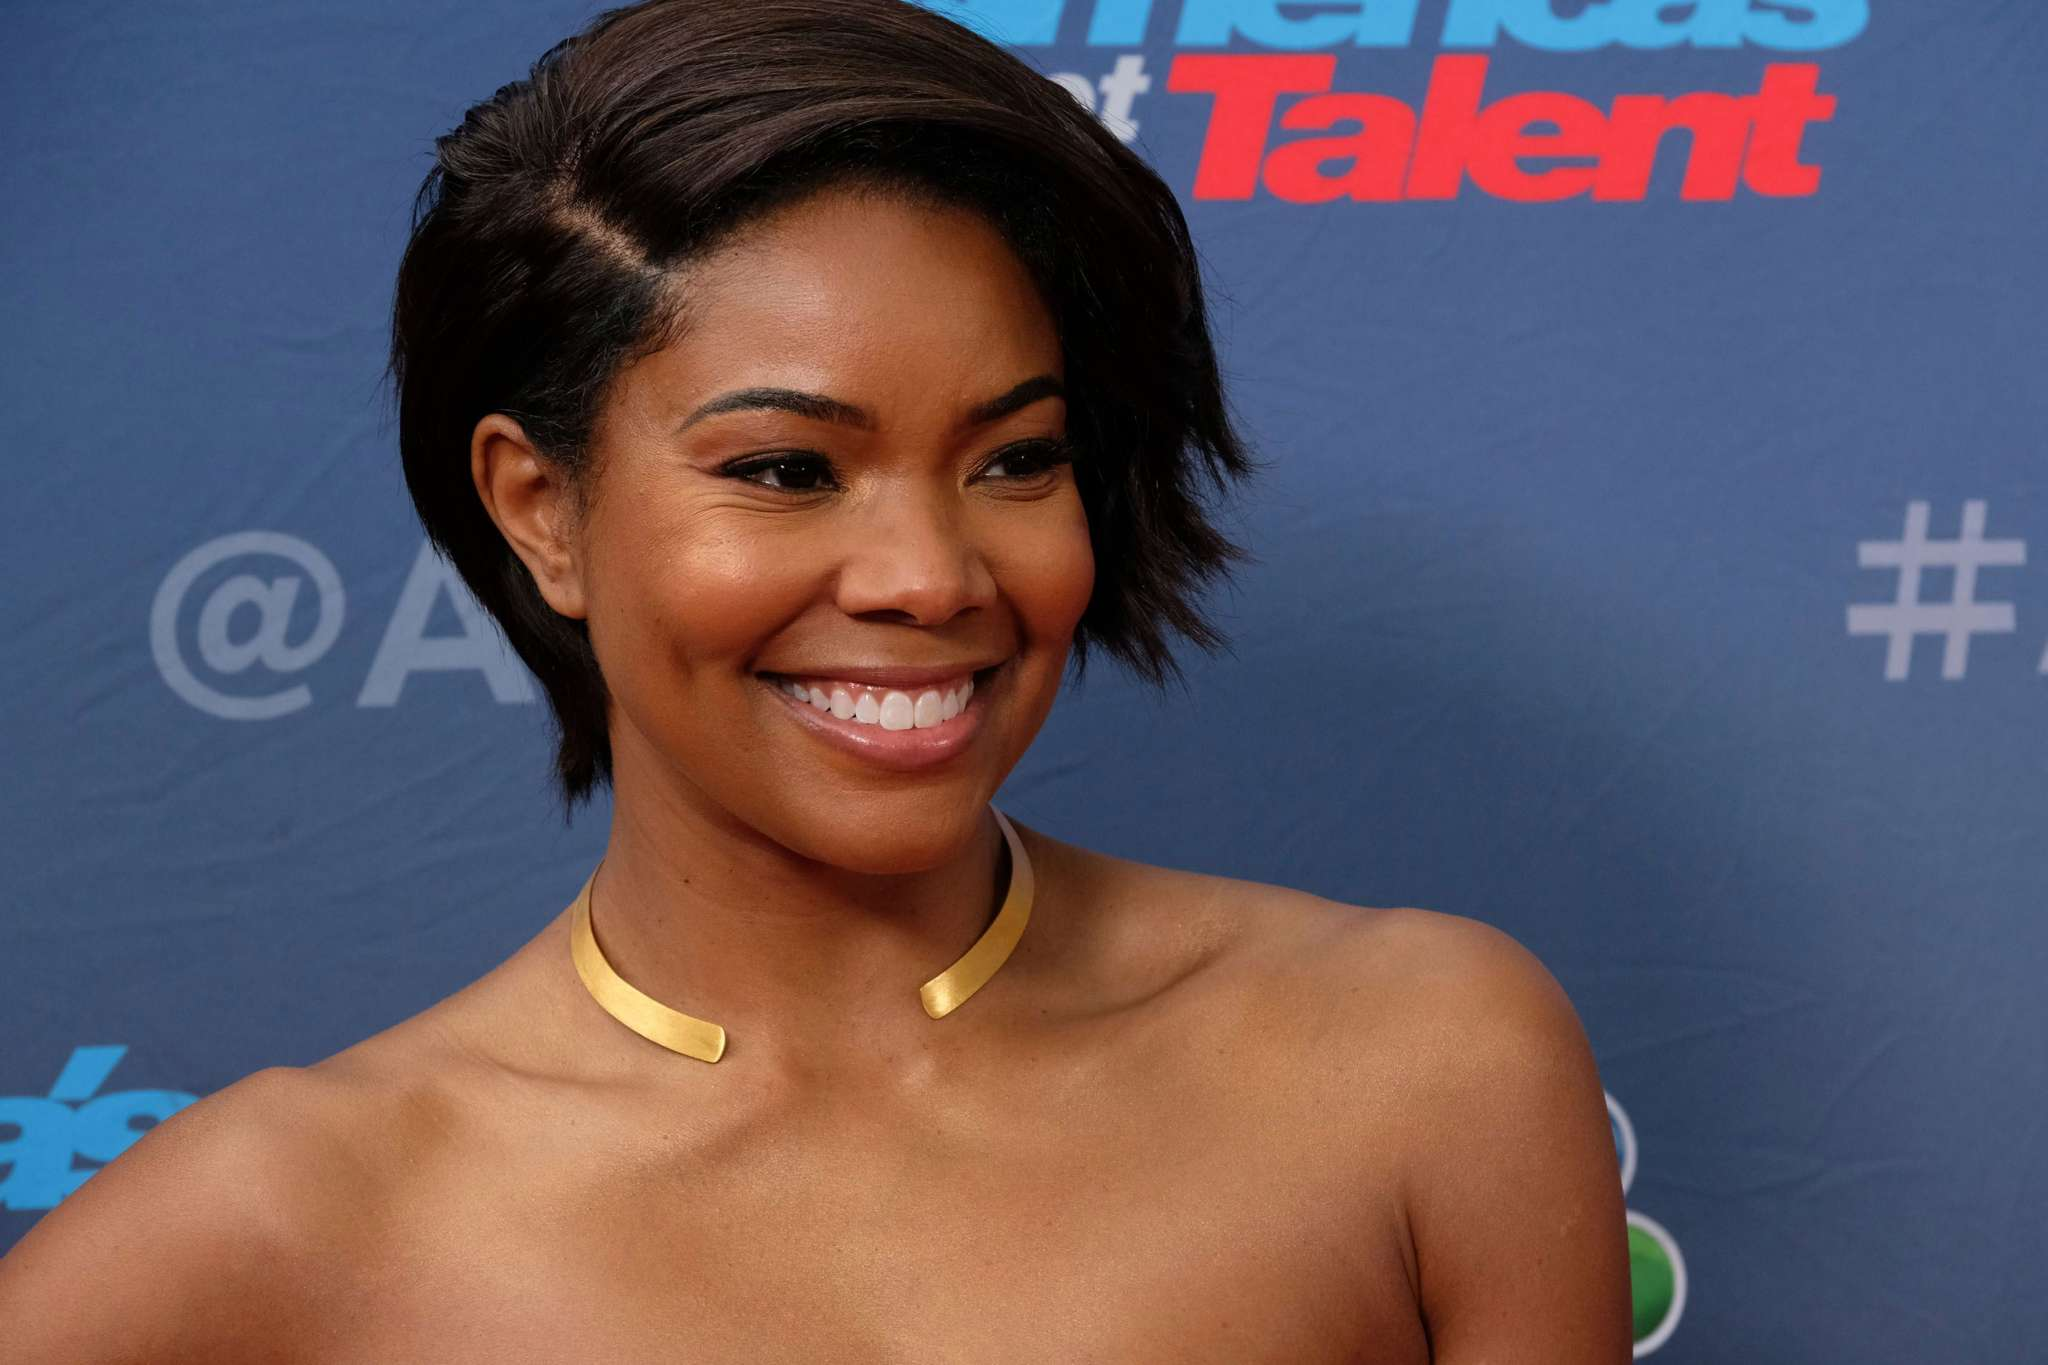 Gabrielle Union Flaunts Her Toned Body, While Wearing Only This Swimsuit